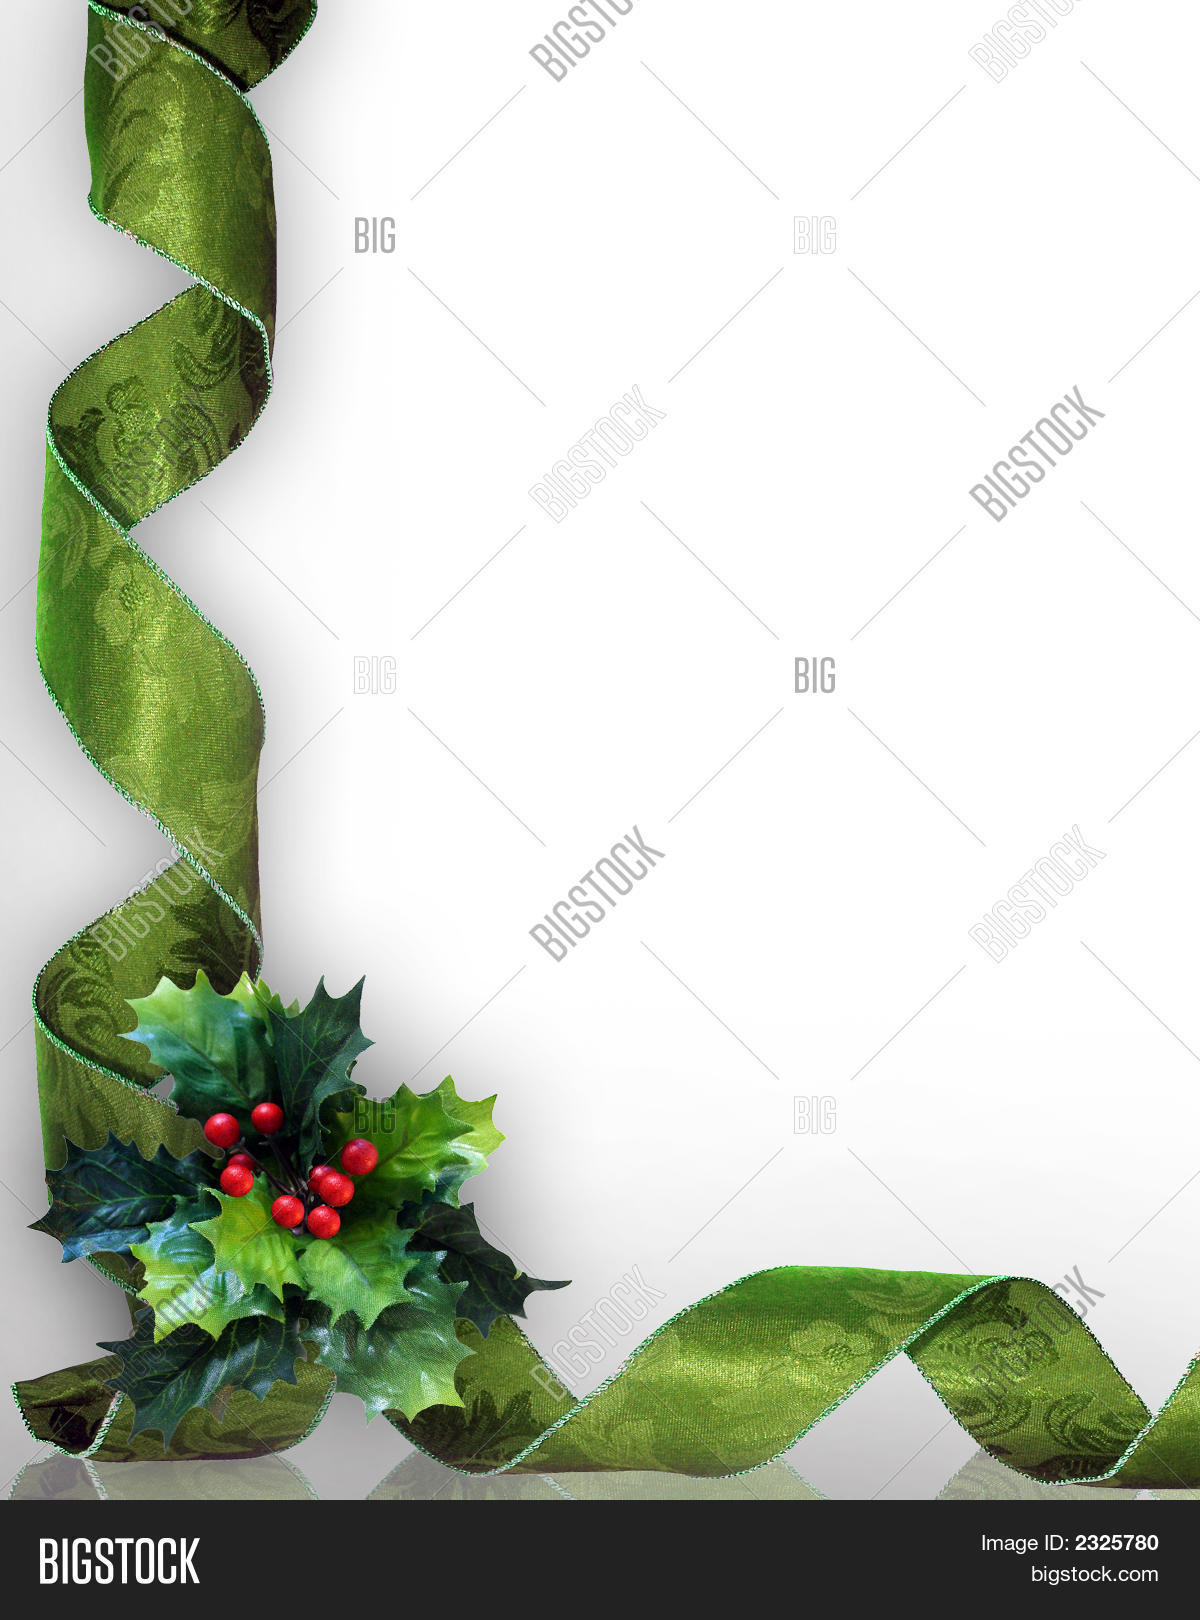 3D Green Damask Ribbon Christmas Image & Photo | Bigstock